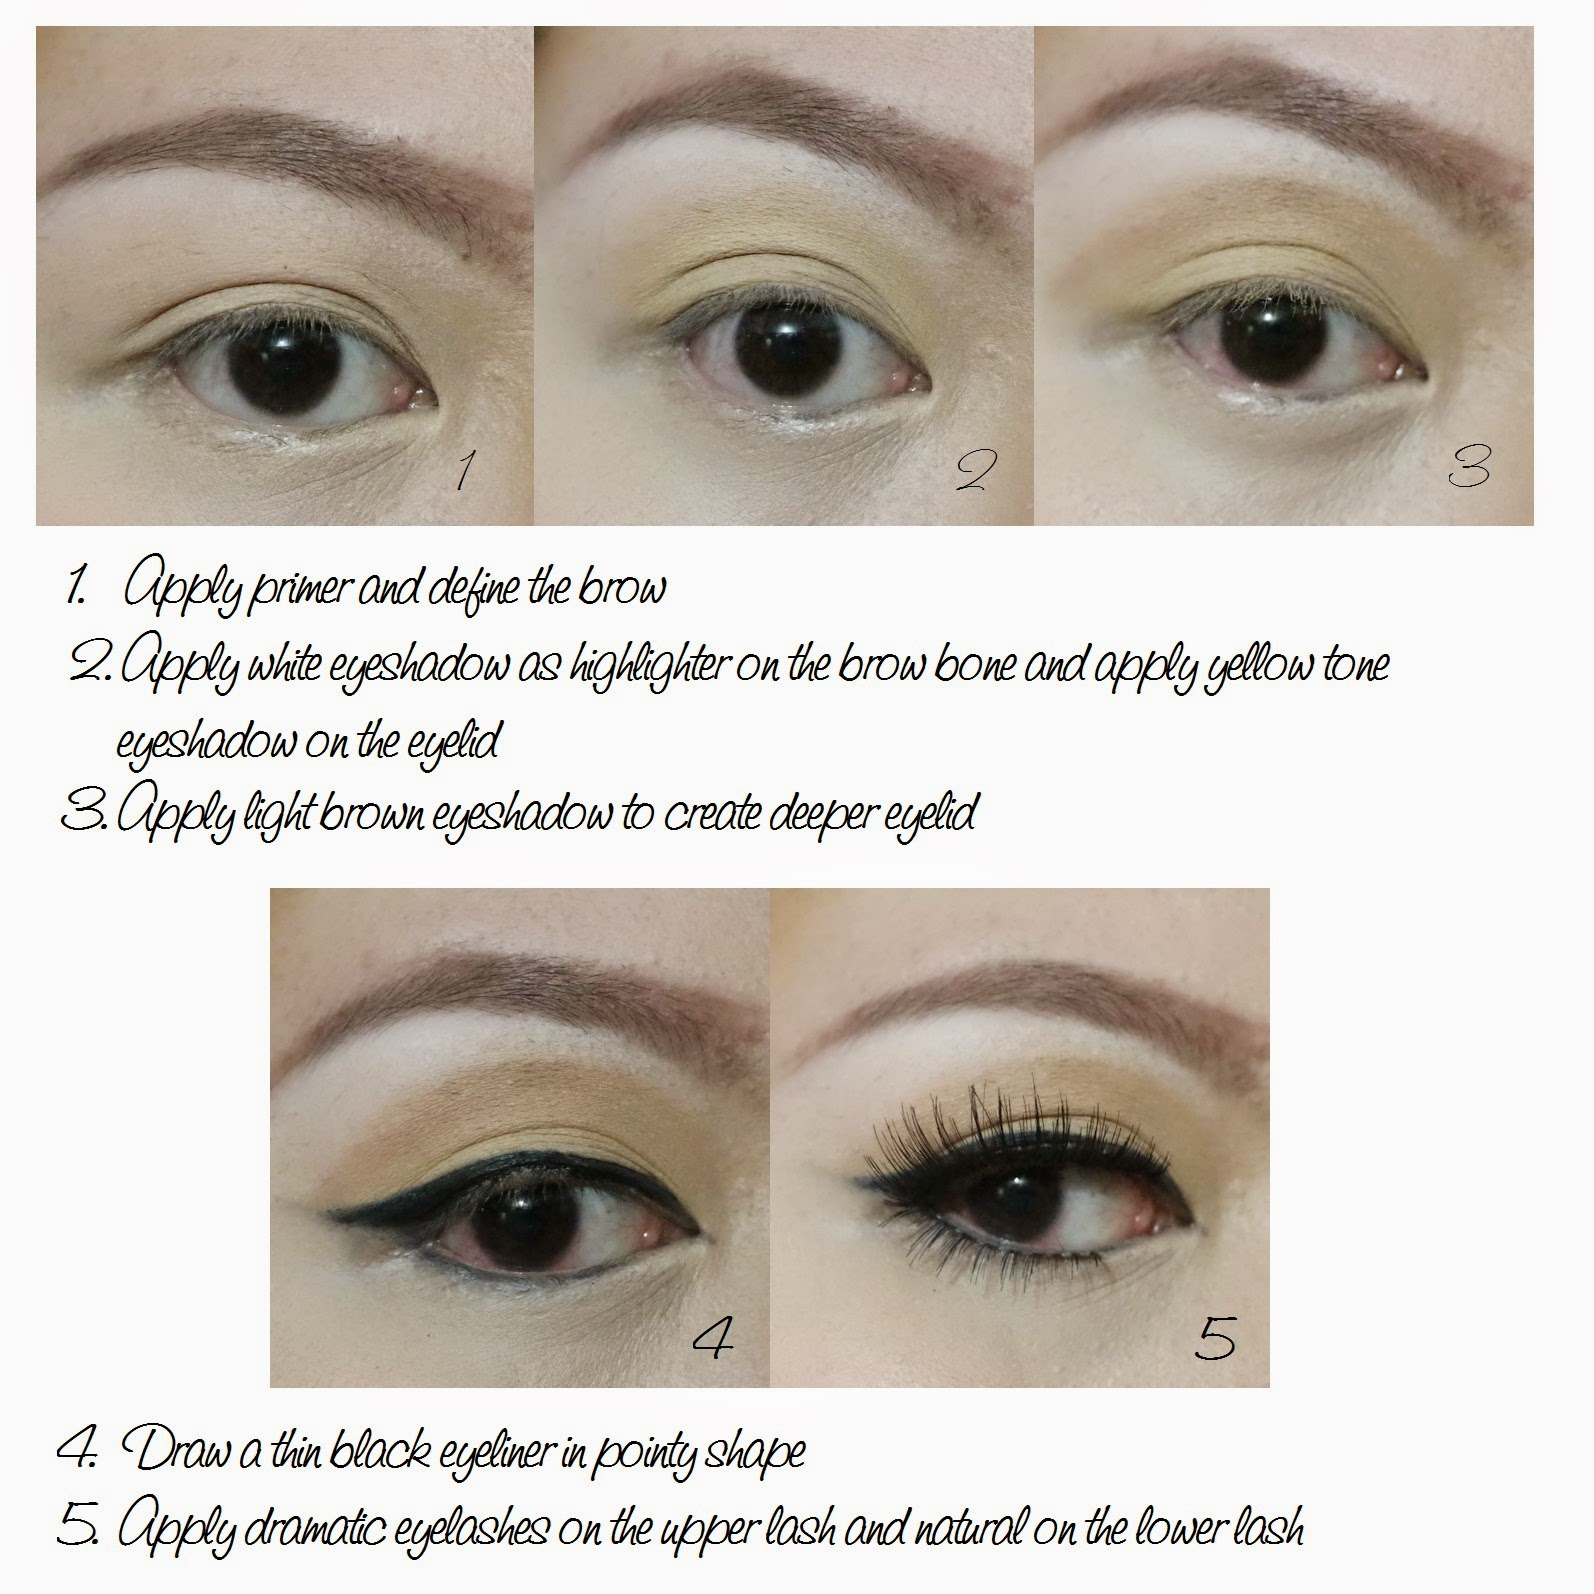 Sanny Lie Subroto Revlon Eyebrow Pencil Review And Tutorial